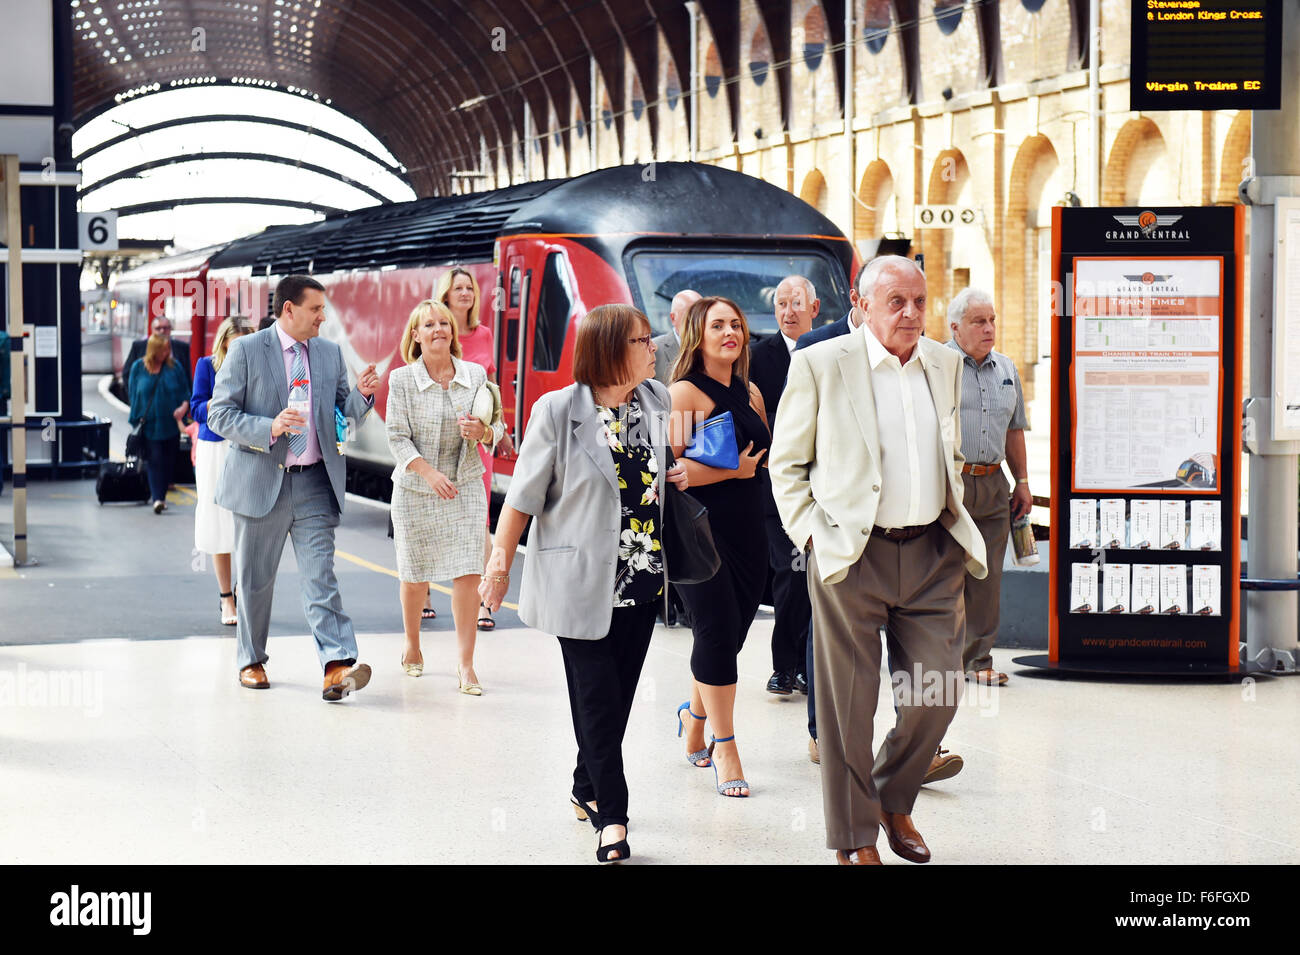 Passengers arrive at York Railway Station - Stock Image